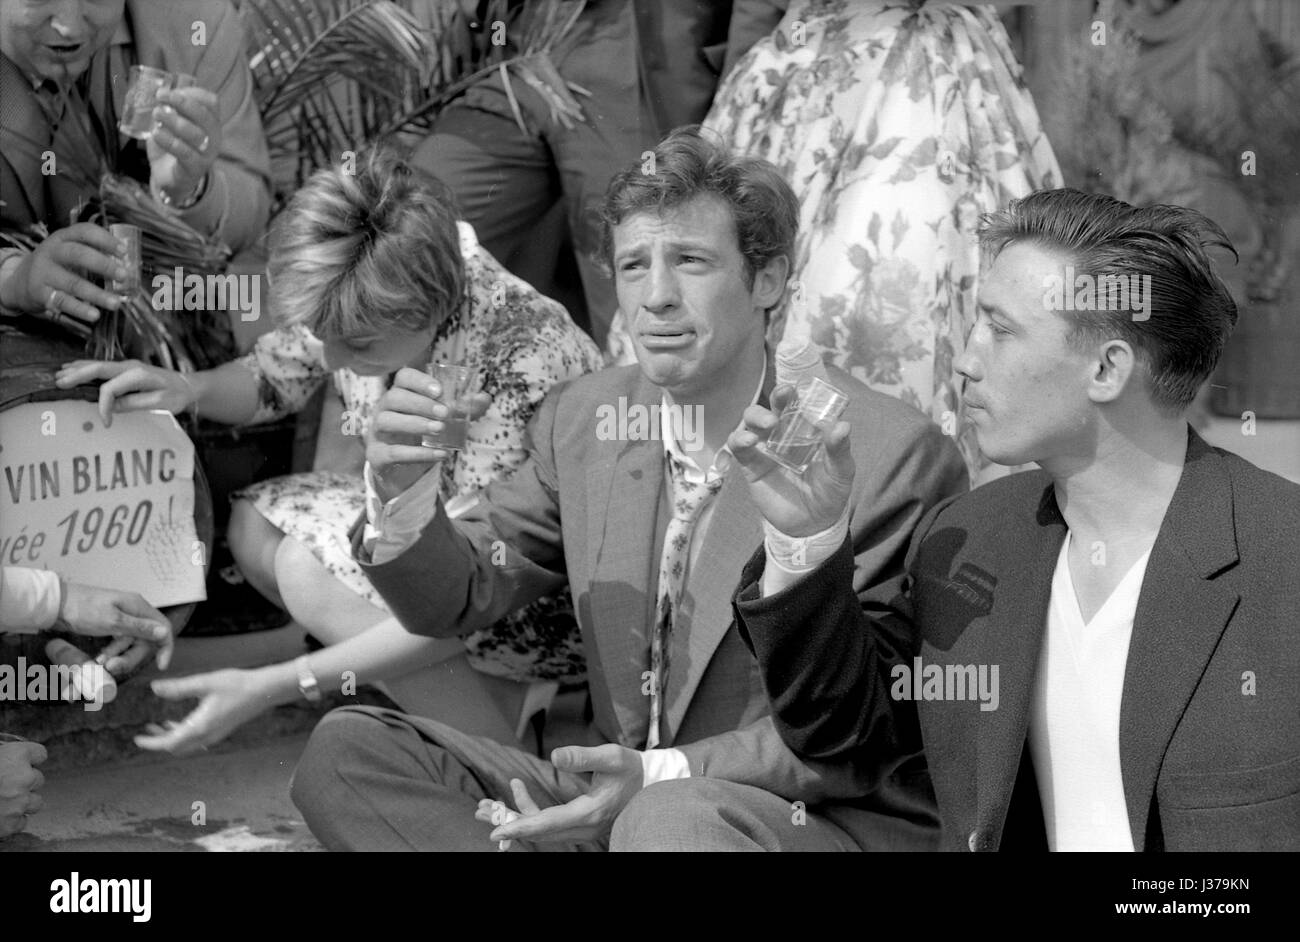 Jean-Paul Belmondo hopes that he will again be invited to appear 09.04.2015 55